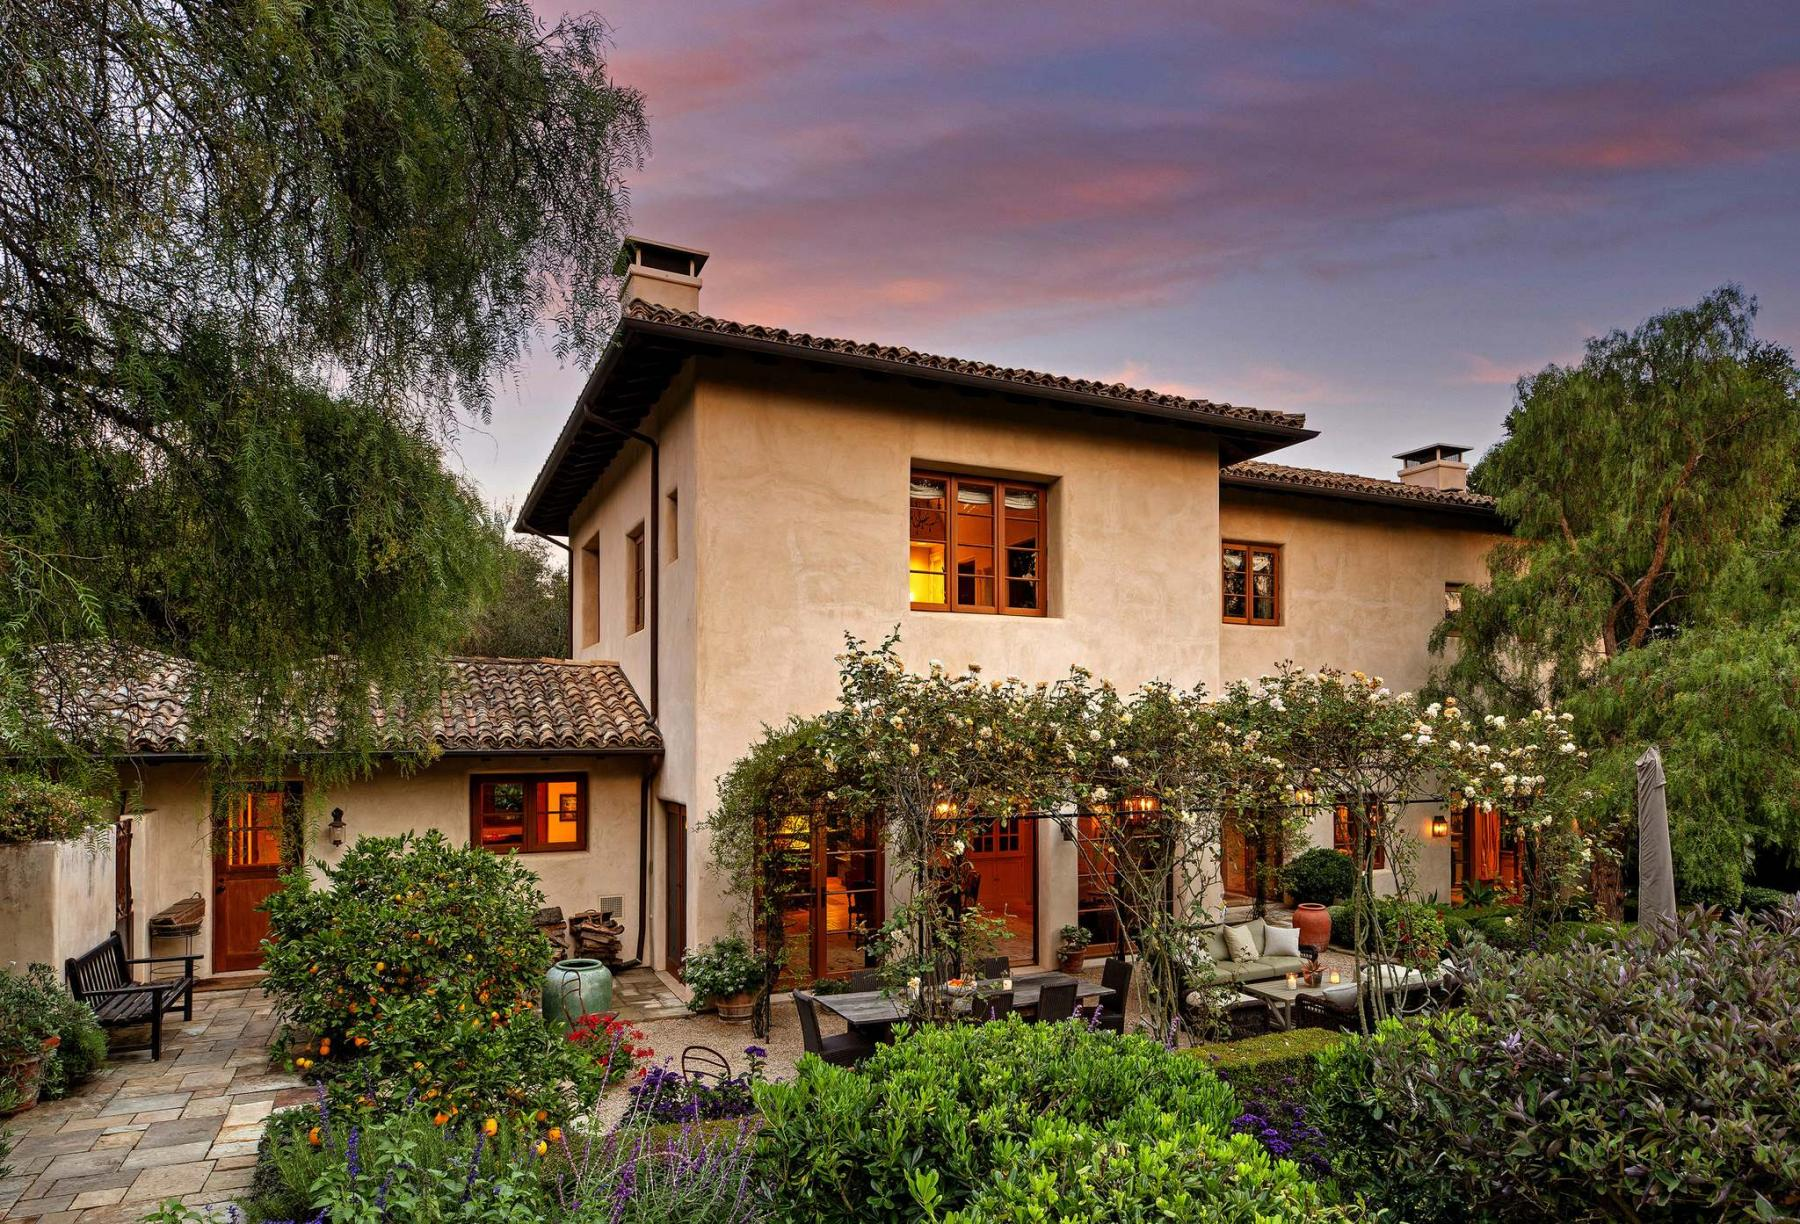 <p>Eric Foote / TNS</p><p>Actress Joanna Kerns and architect Marc Appleton sold their marital home in Montecito, Calif., for $8.35 million. </p></p>